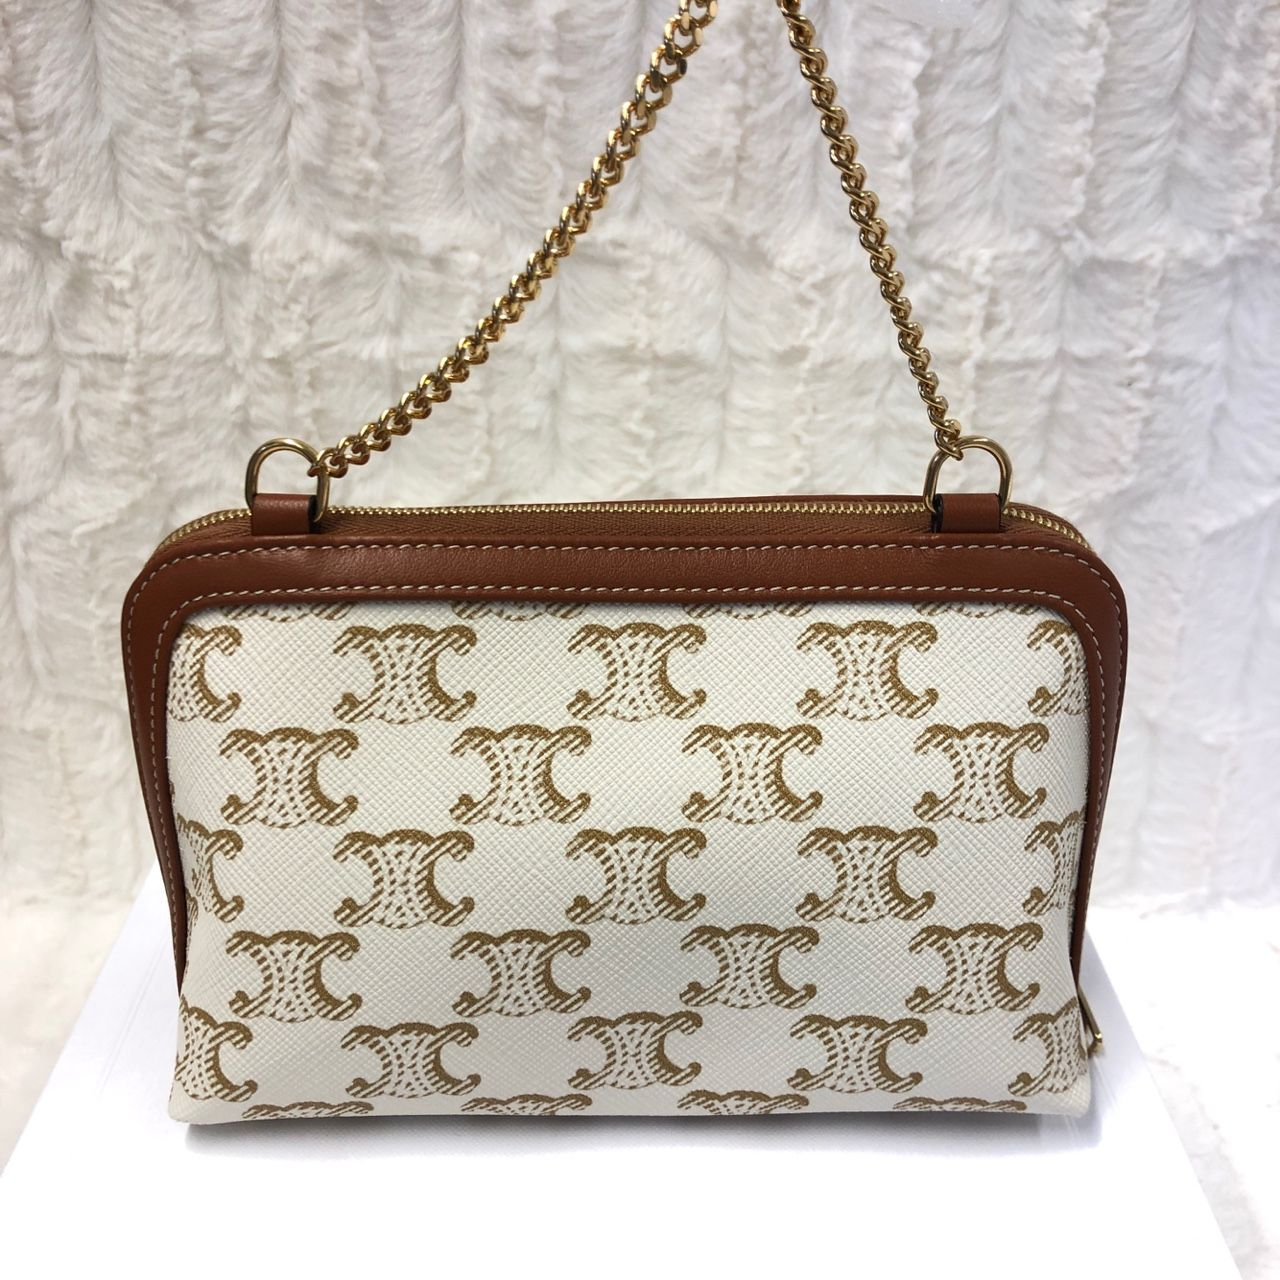 Celine Clutch with Chain in Triomphe canvas and Lambskin White/Tan 10E382CBX.01TA